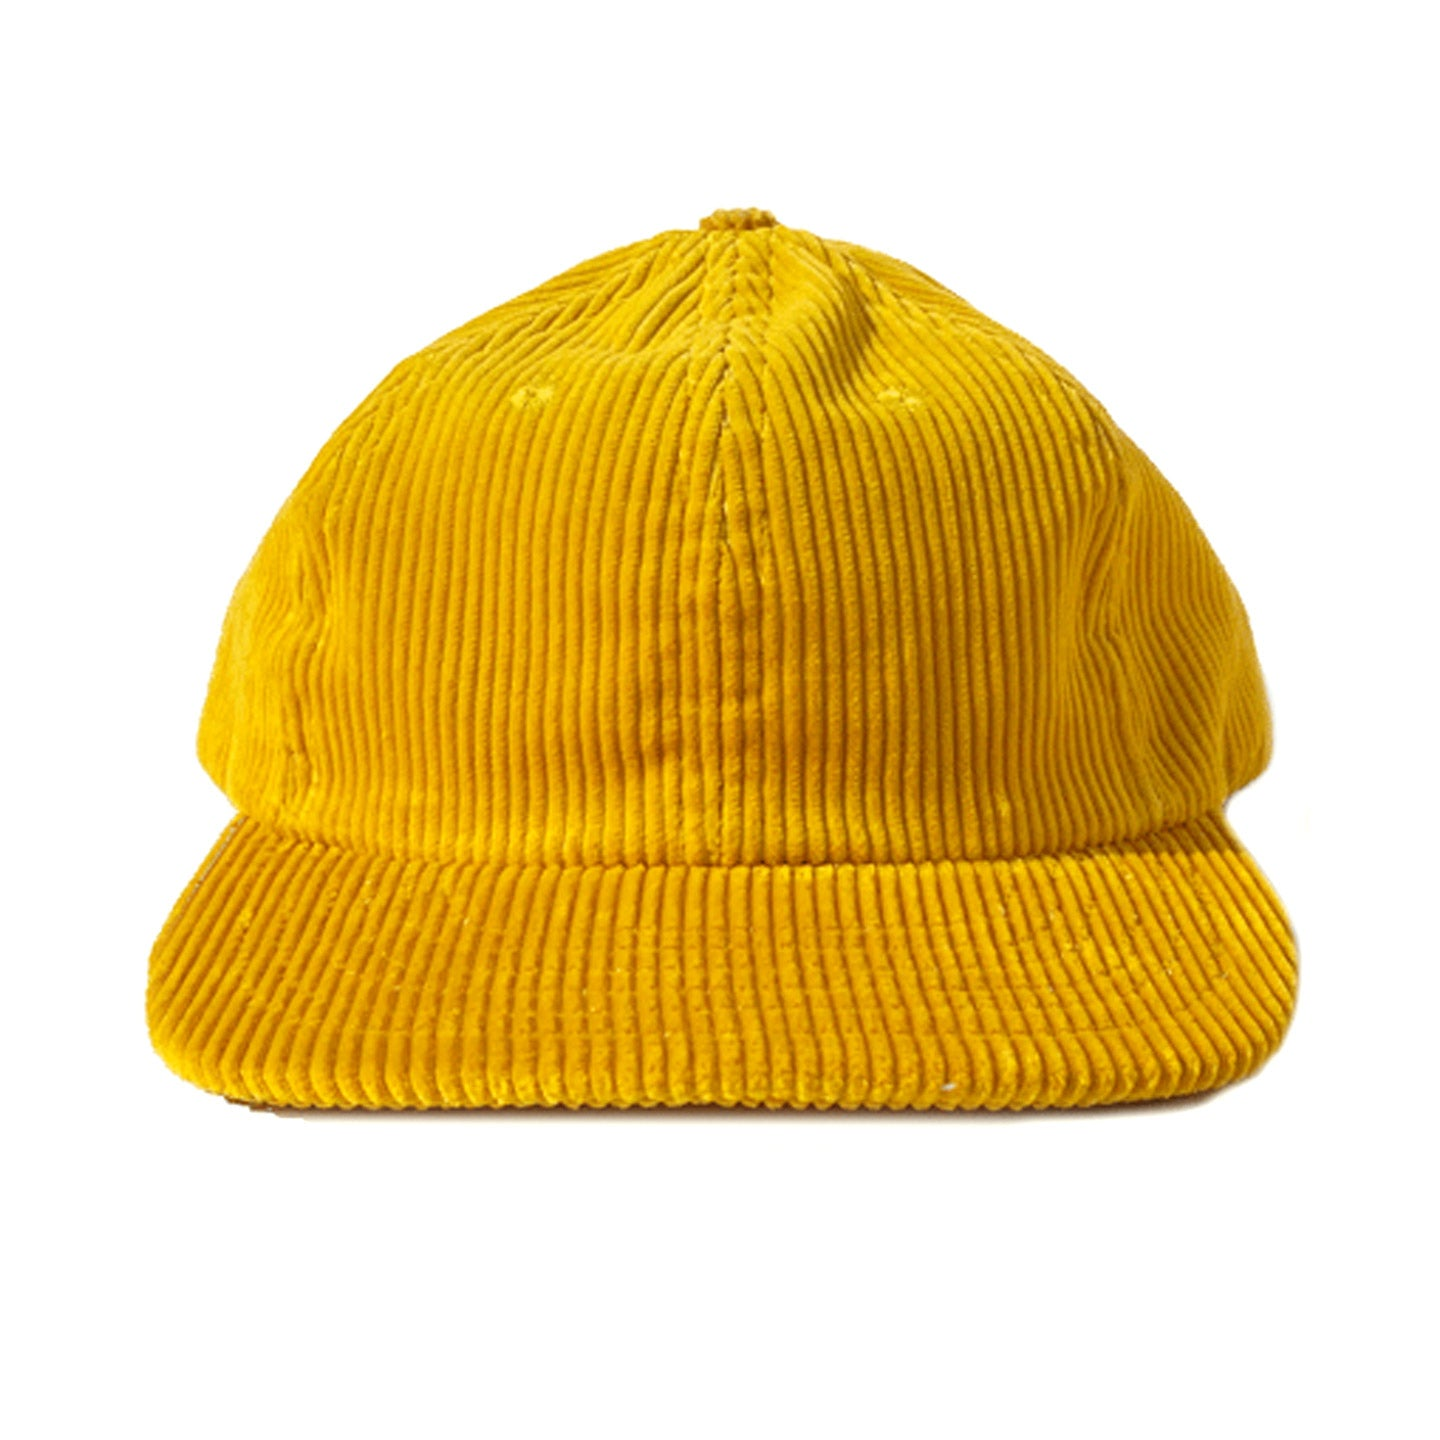 LITE YEAR SIX PANEL CAP GOLD CORDUROY